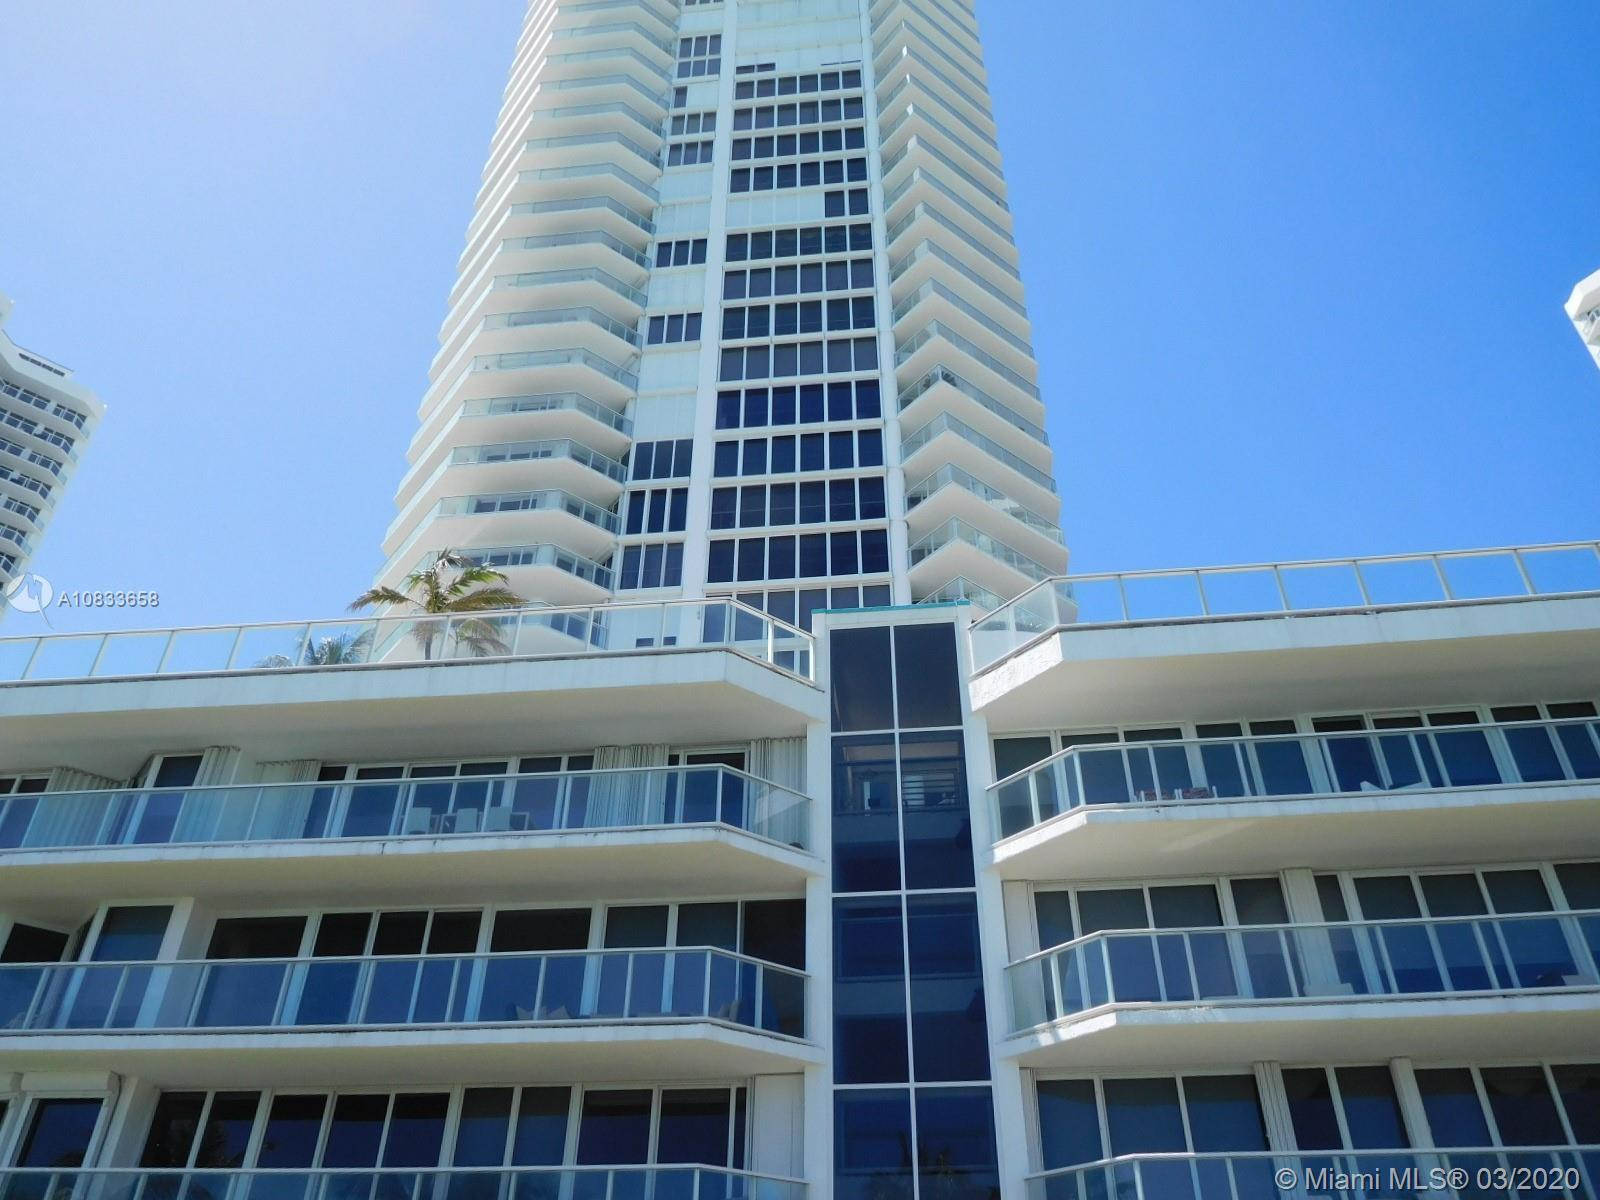 BEAUTIFUL OCEAN AND POOL VIEW FROM THIS VERY SPACIOUS, SPLIT PLAN 2/2 APARTMENT ON THE 6TH FLOOR. LA